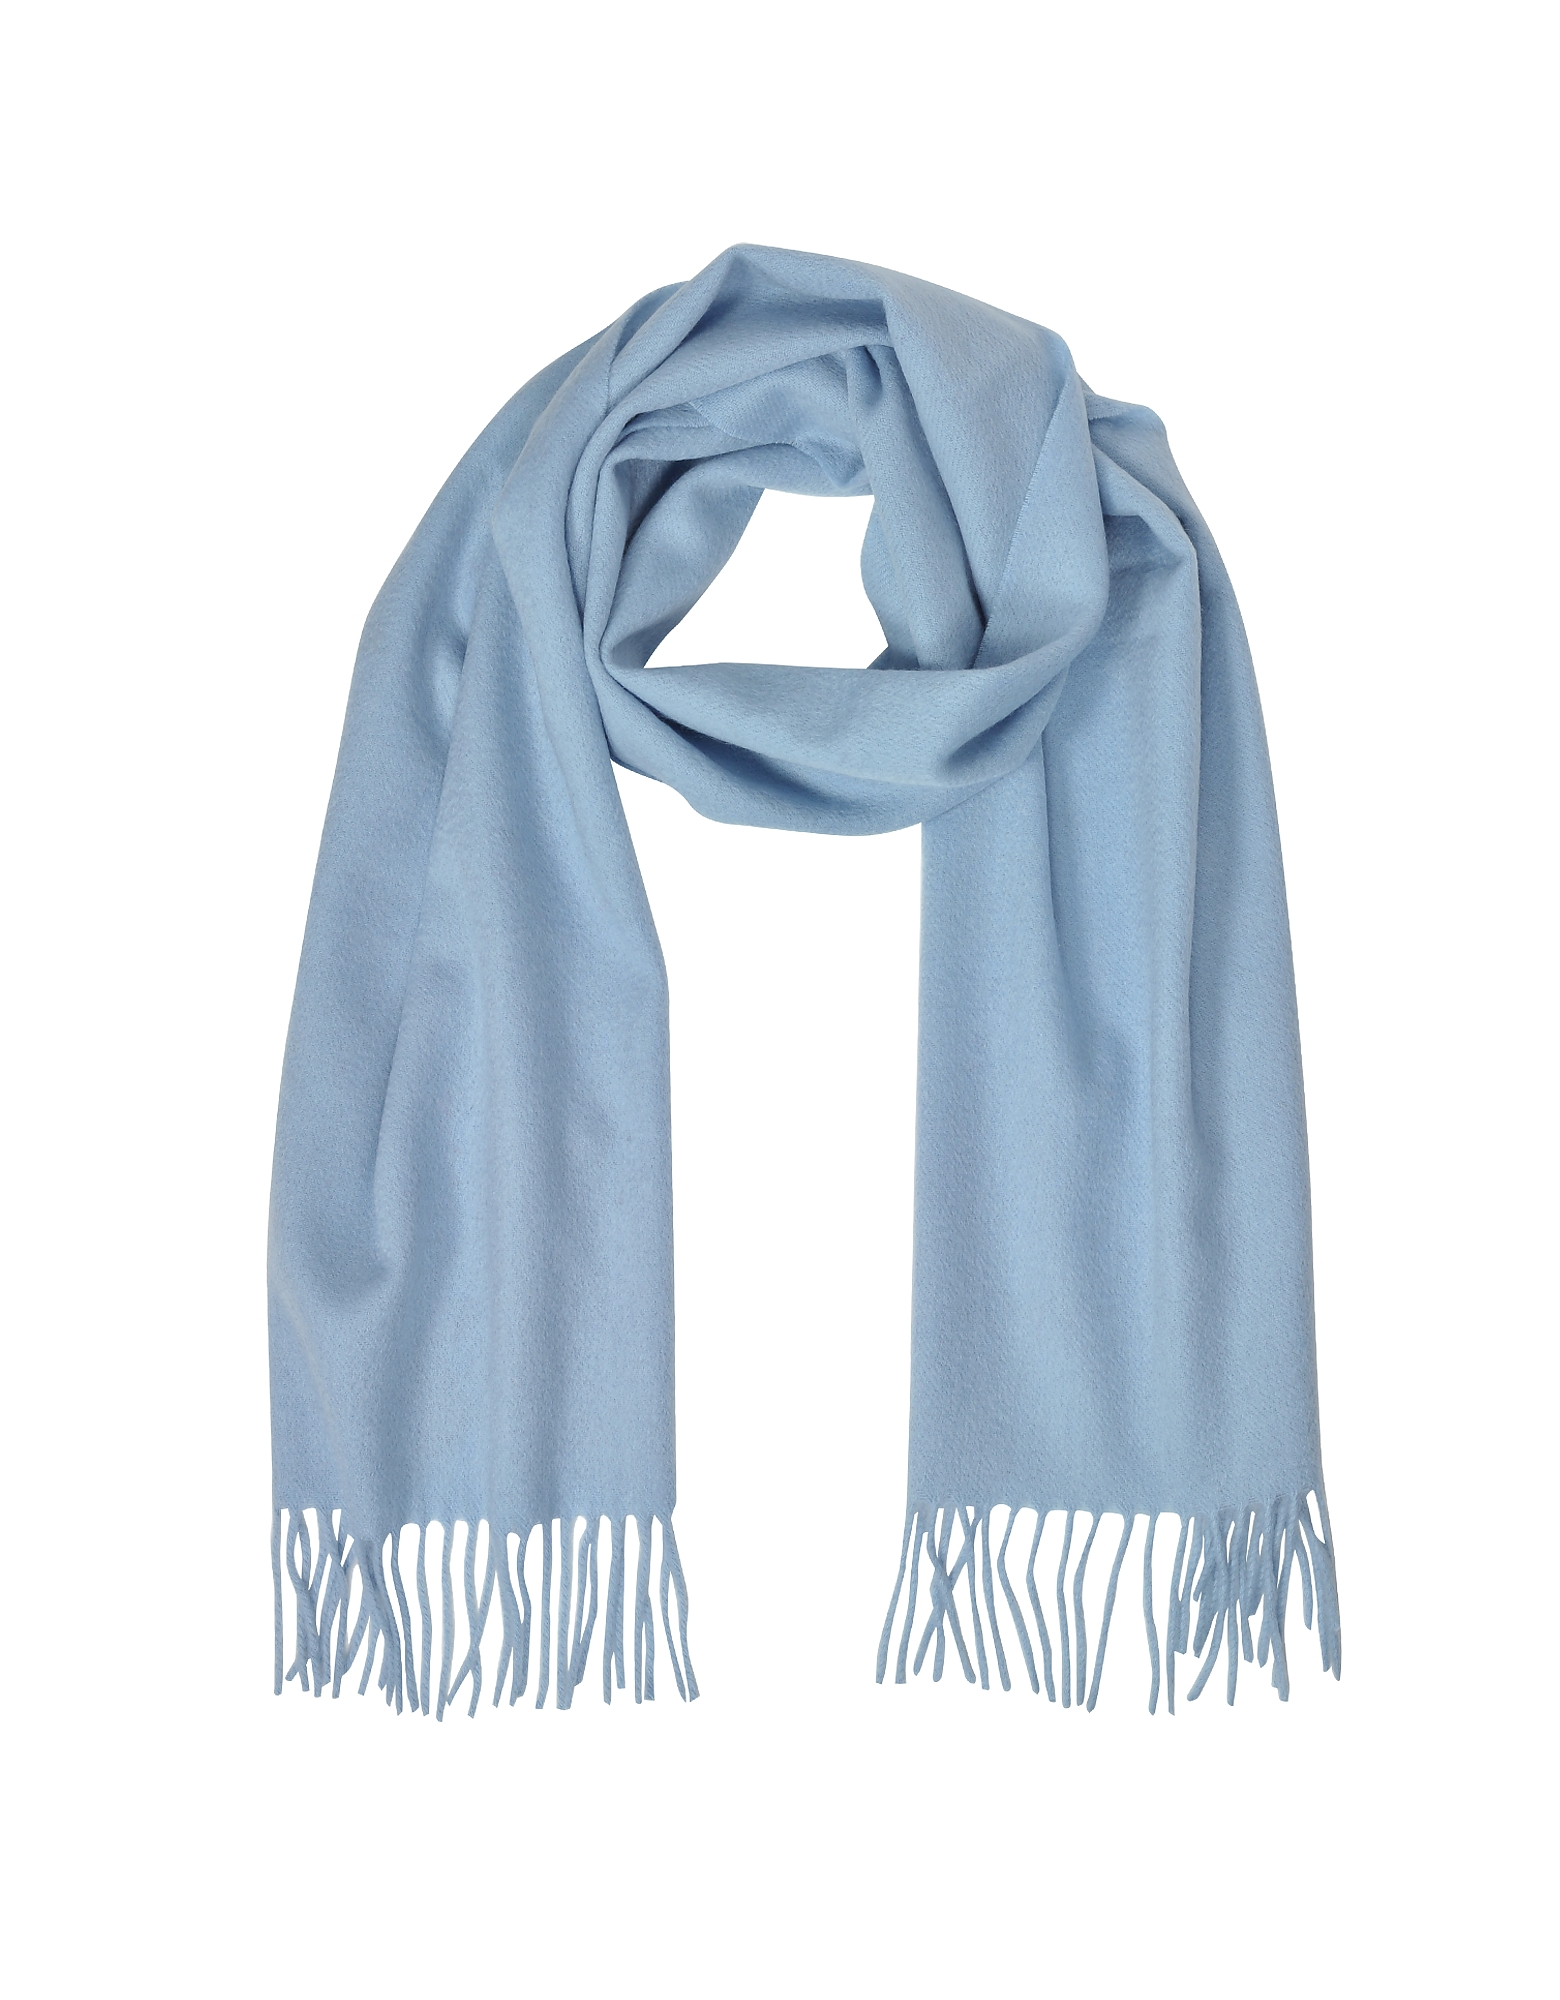 Mila Schon Long Scarves, Cashmere and Wool Fringed Long Scarf